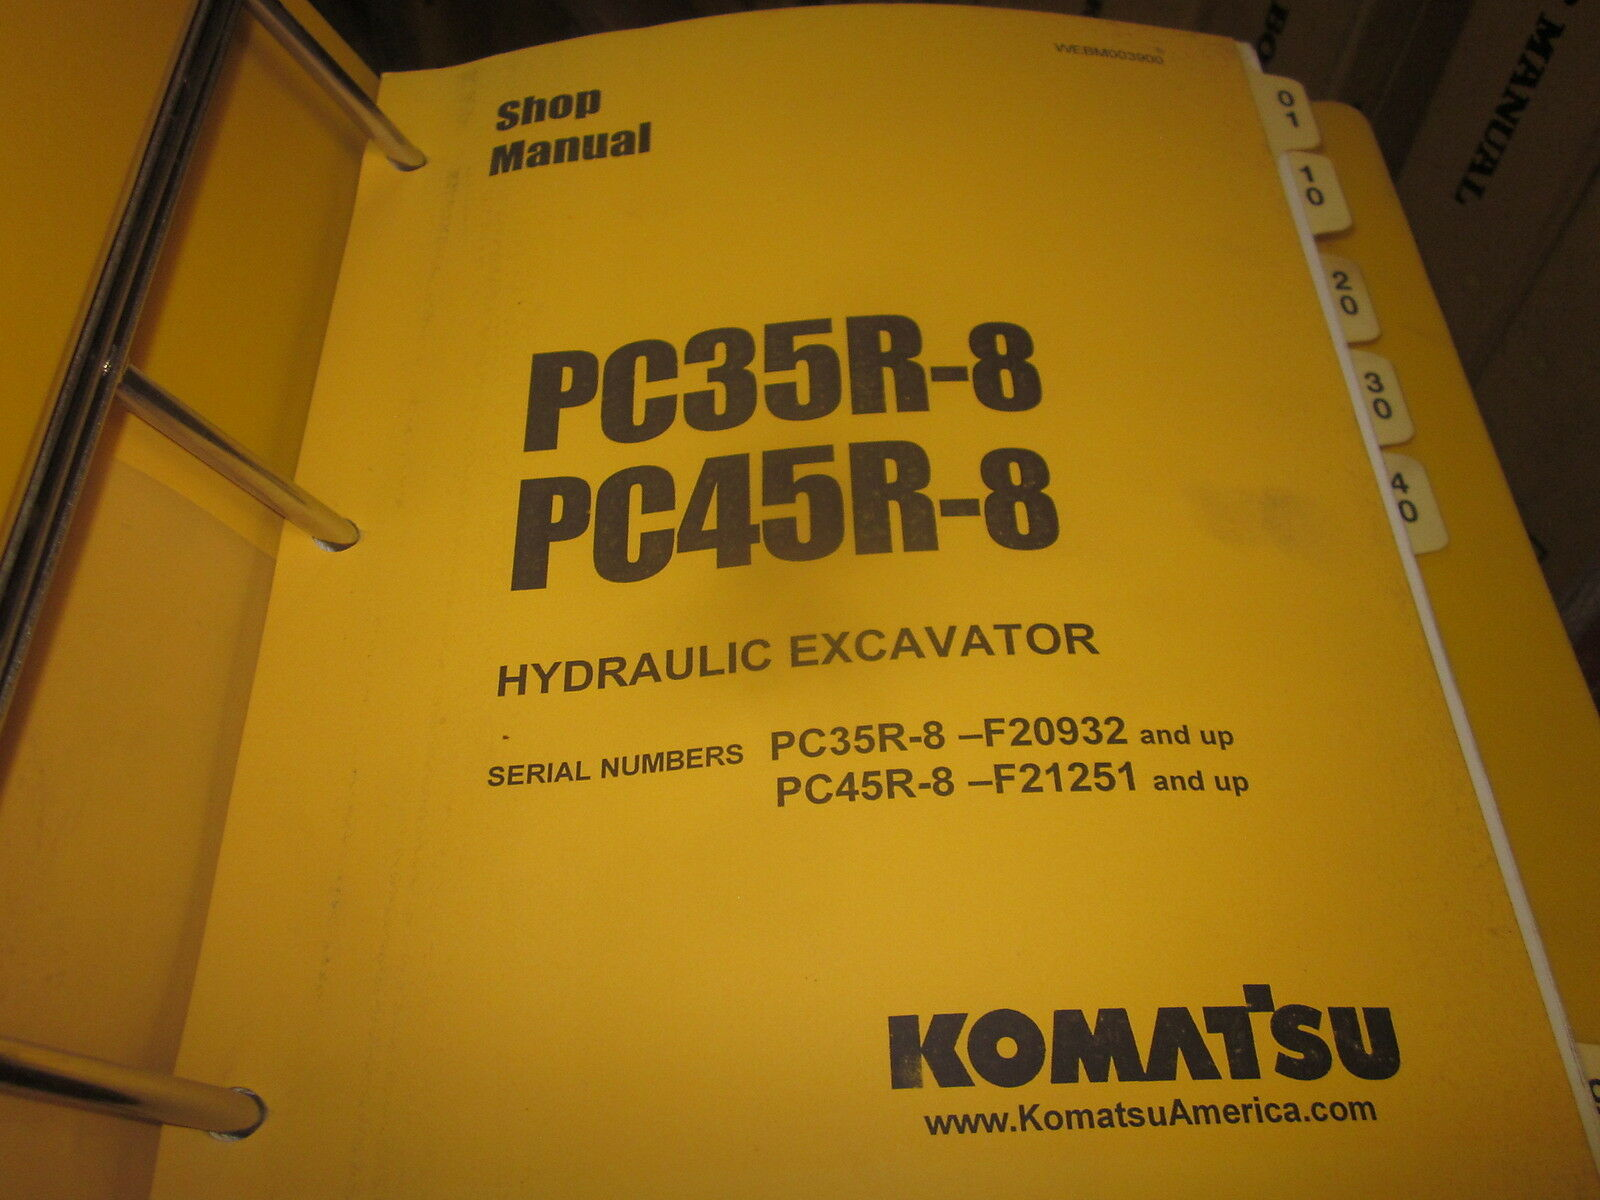 Komatsu PC35R-8 PC45R-8 Hydraulic Excavator Service Repair Manual 1 of  2Only 1 available ...